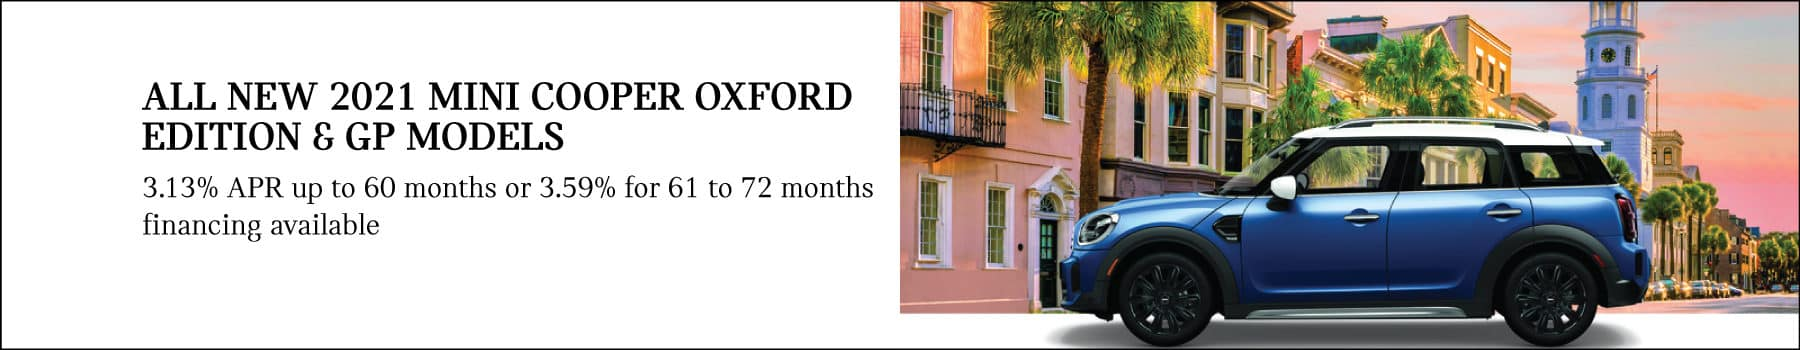 Monthly-Lease-Offer-Banner—Oxfords-1800×350